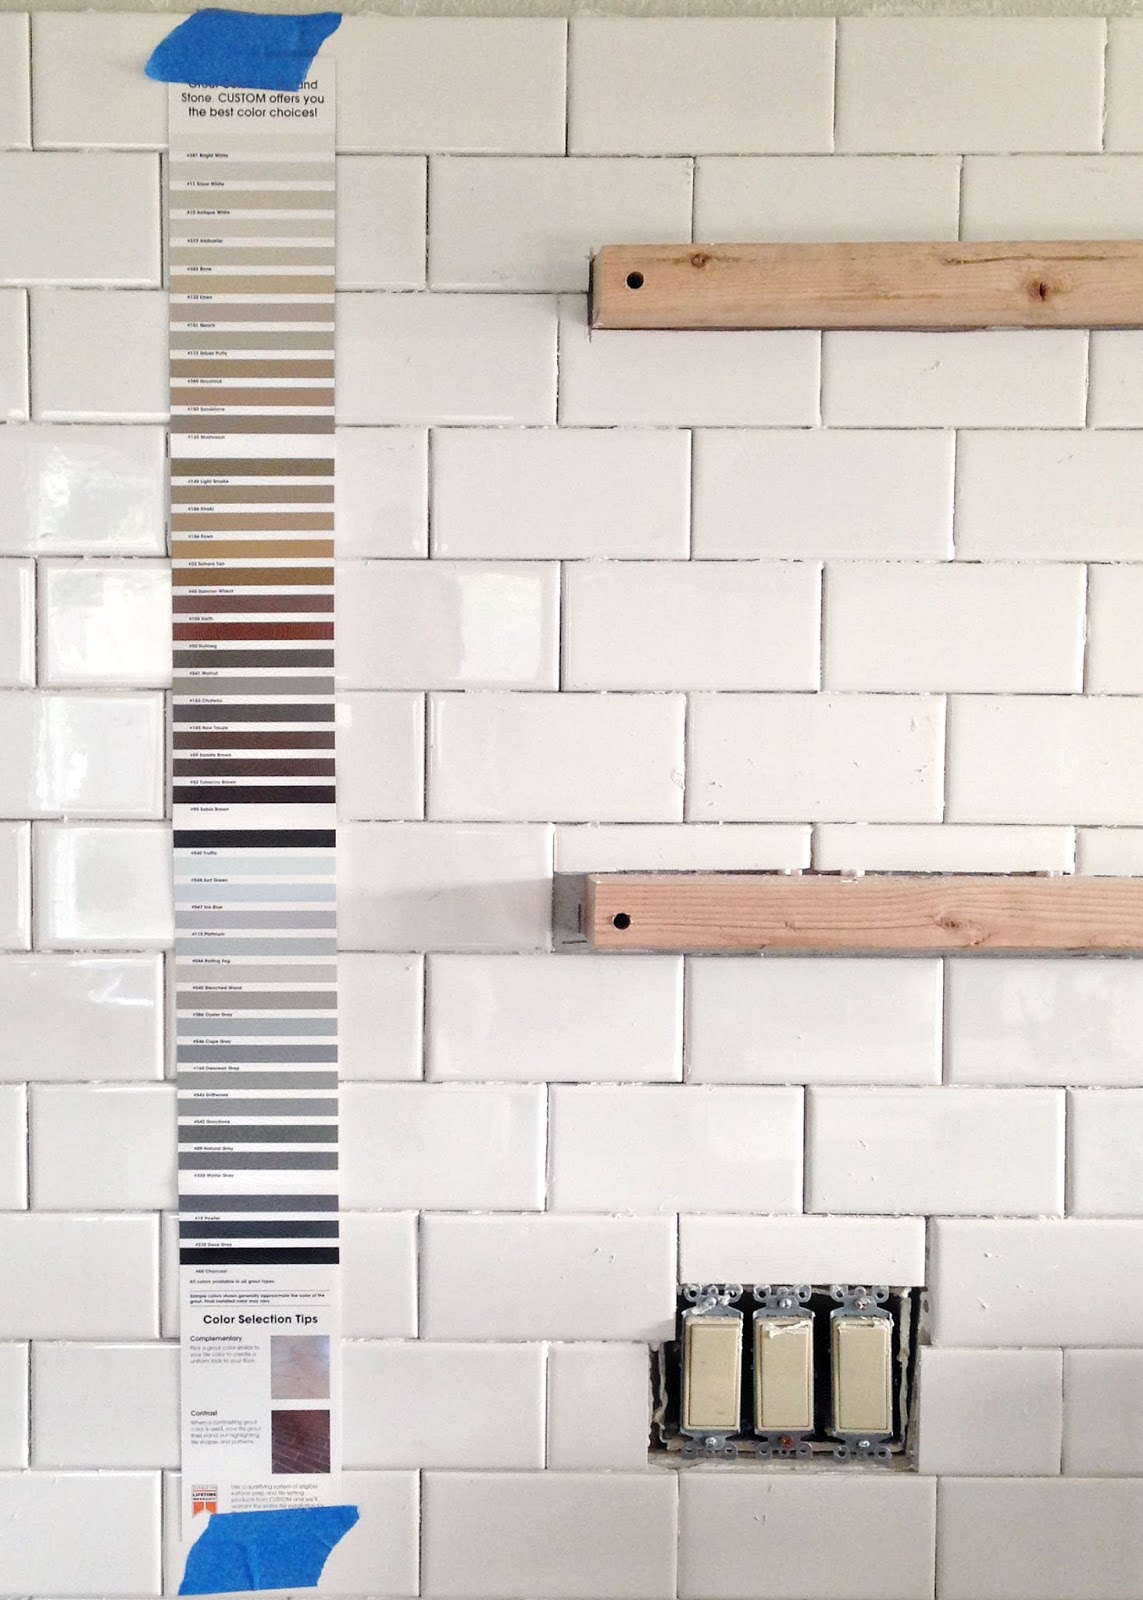 Subway tile installation tips on grouting with fusion pro finally dailygadgetfo Choice Image